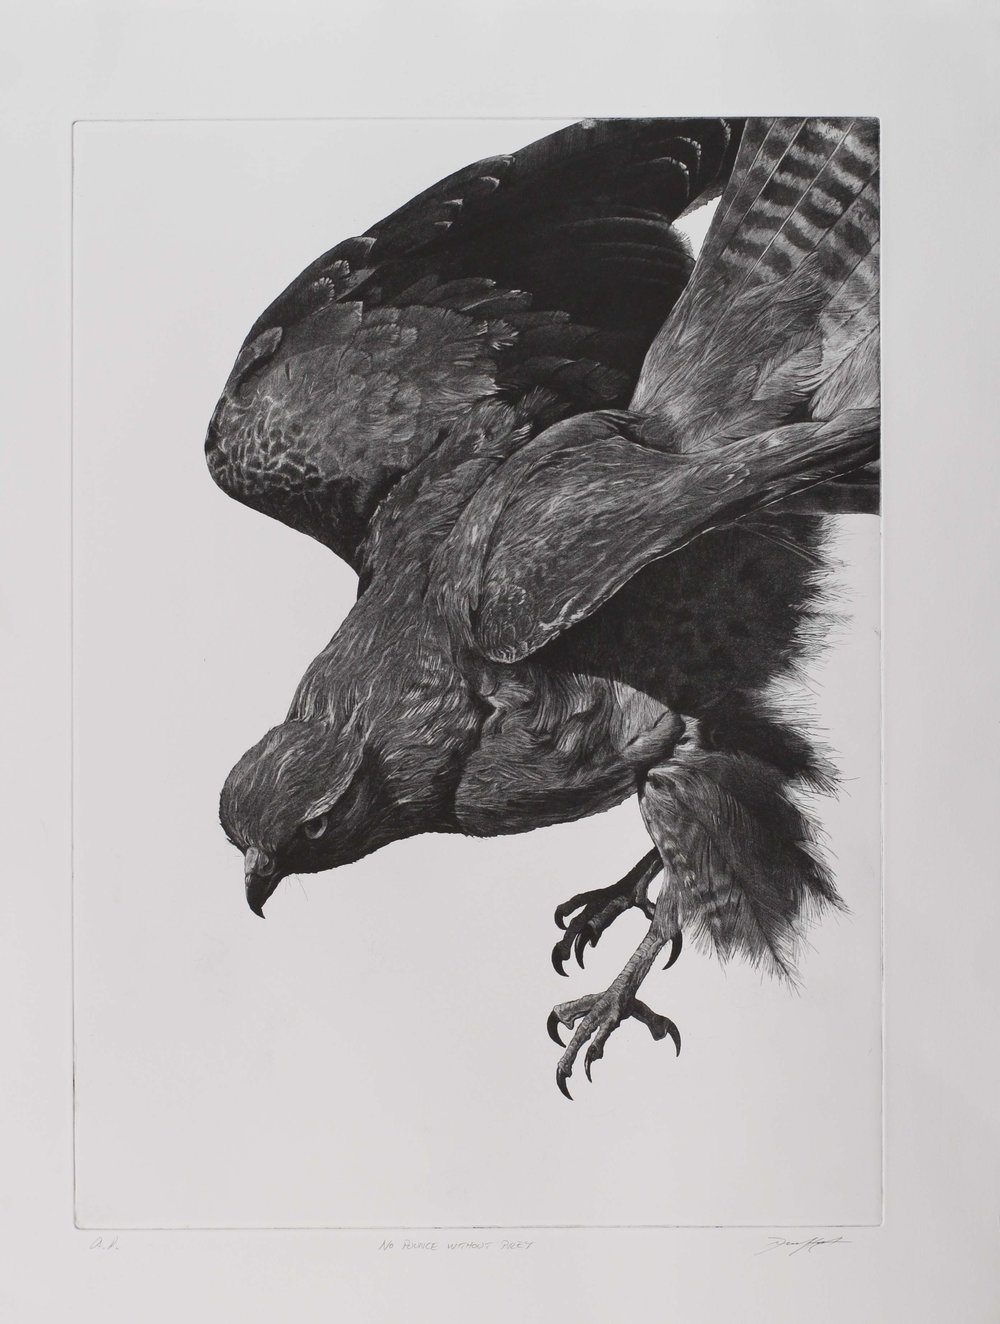 No Pounce Without Prey  etching and aquatint  Unframed £500 Size 60 cm x 43.75 cm  Framed £590 Size 80 cm x 63.75 cm